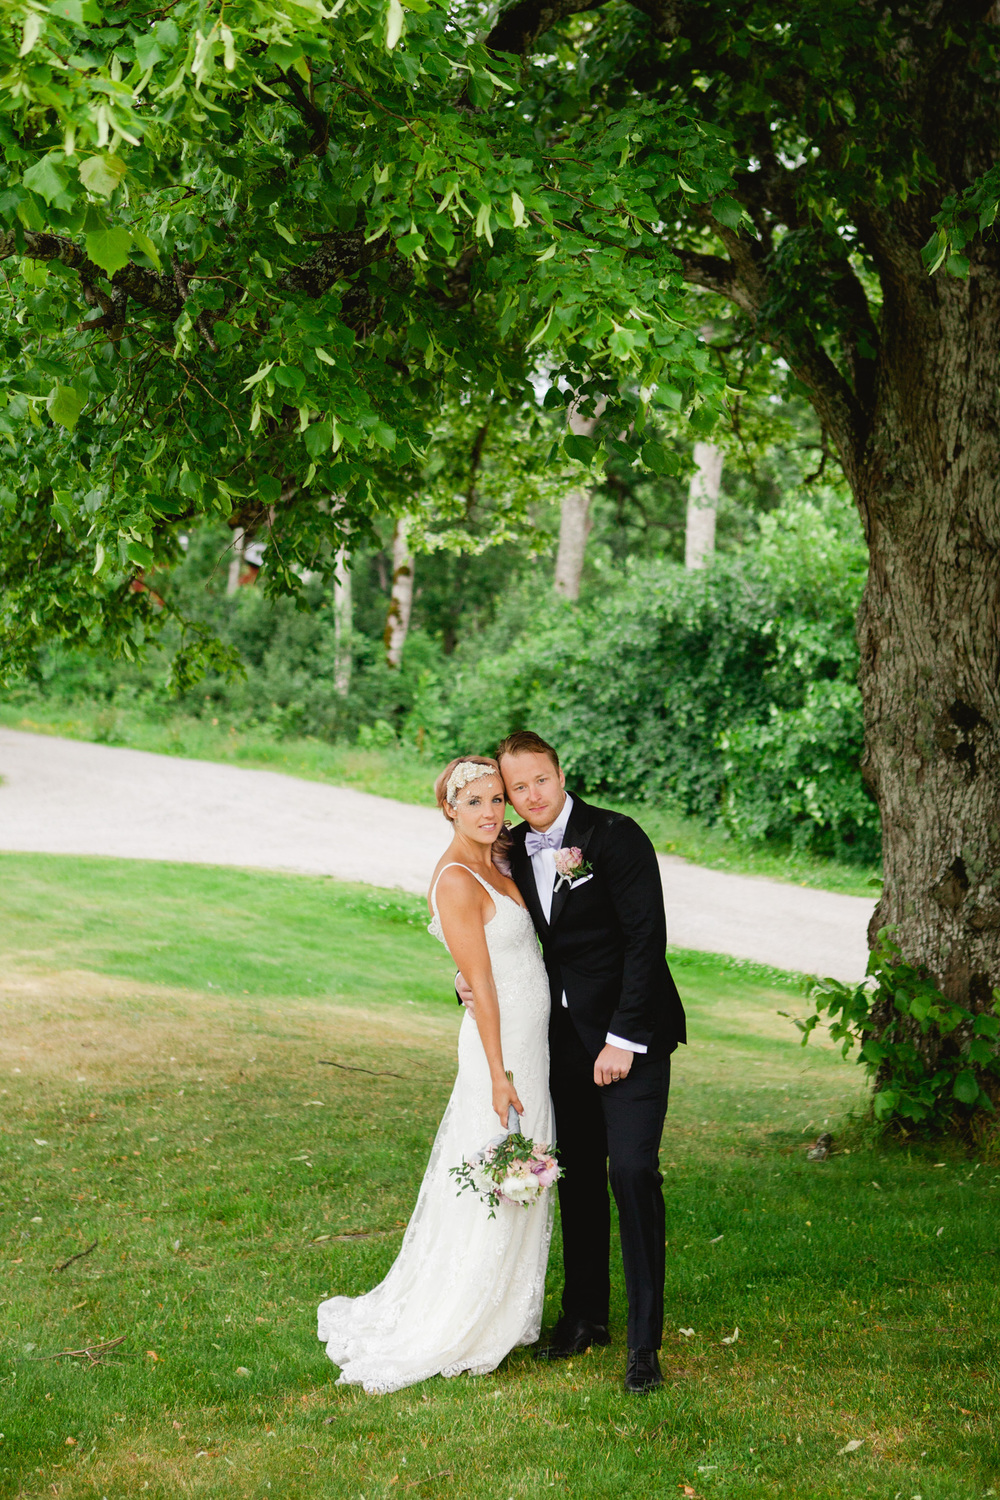 014-sweden-vidbynäs-wedding-photographer-videographer.jpg